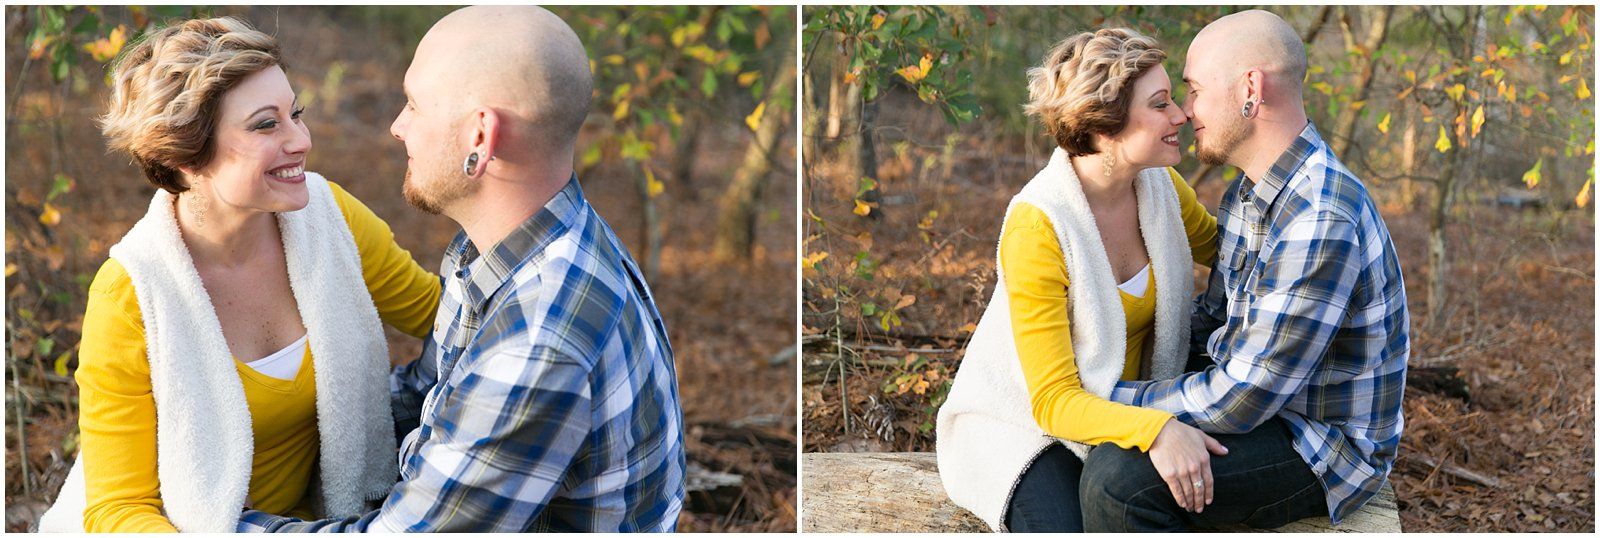 jessica_ryan_photography_the_narrows_engagement_portraits_first_landing_state_park_engagement_photography_0171